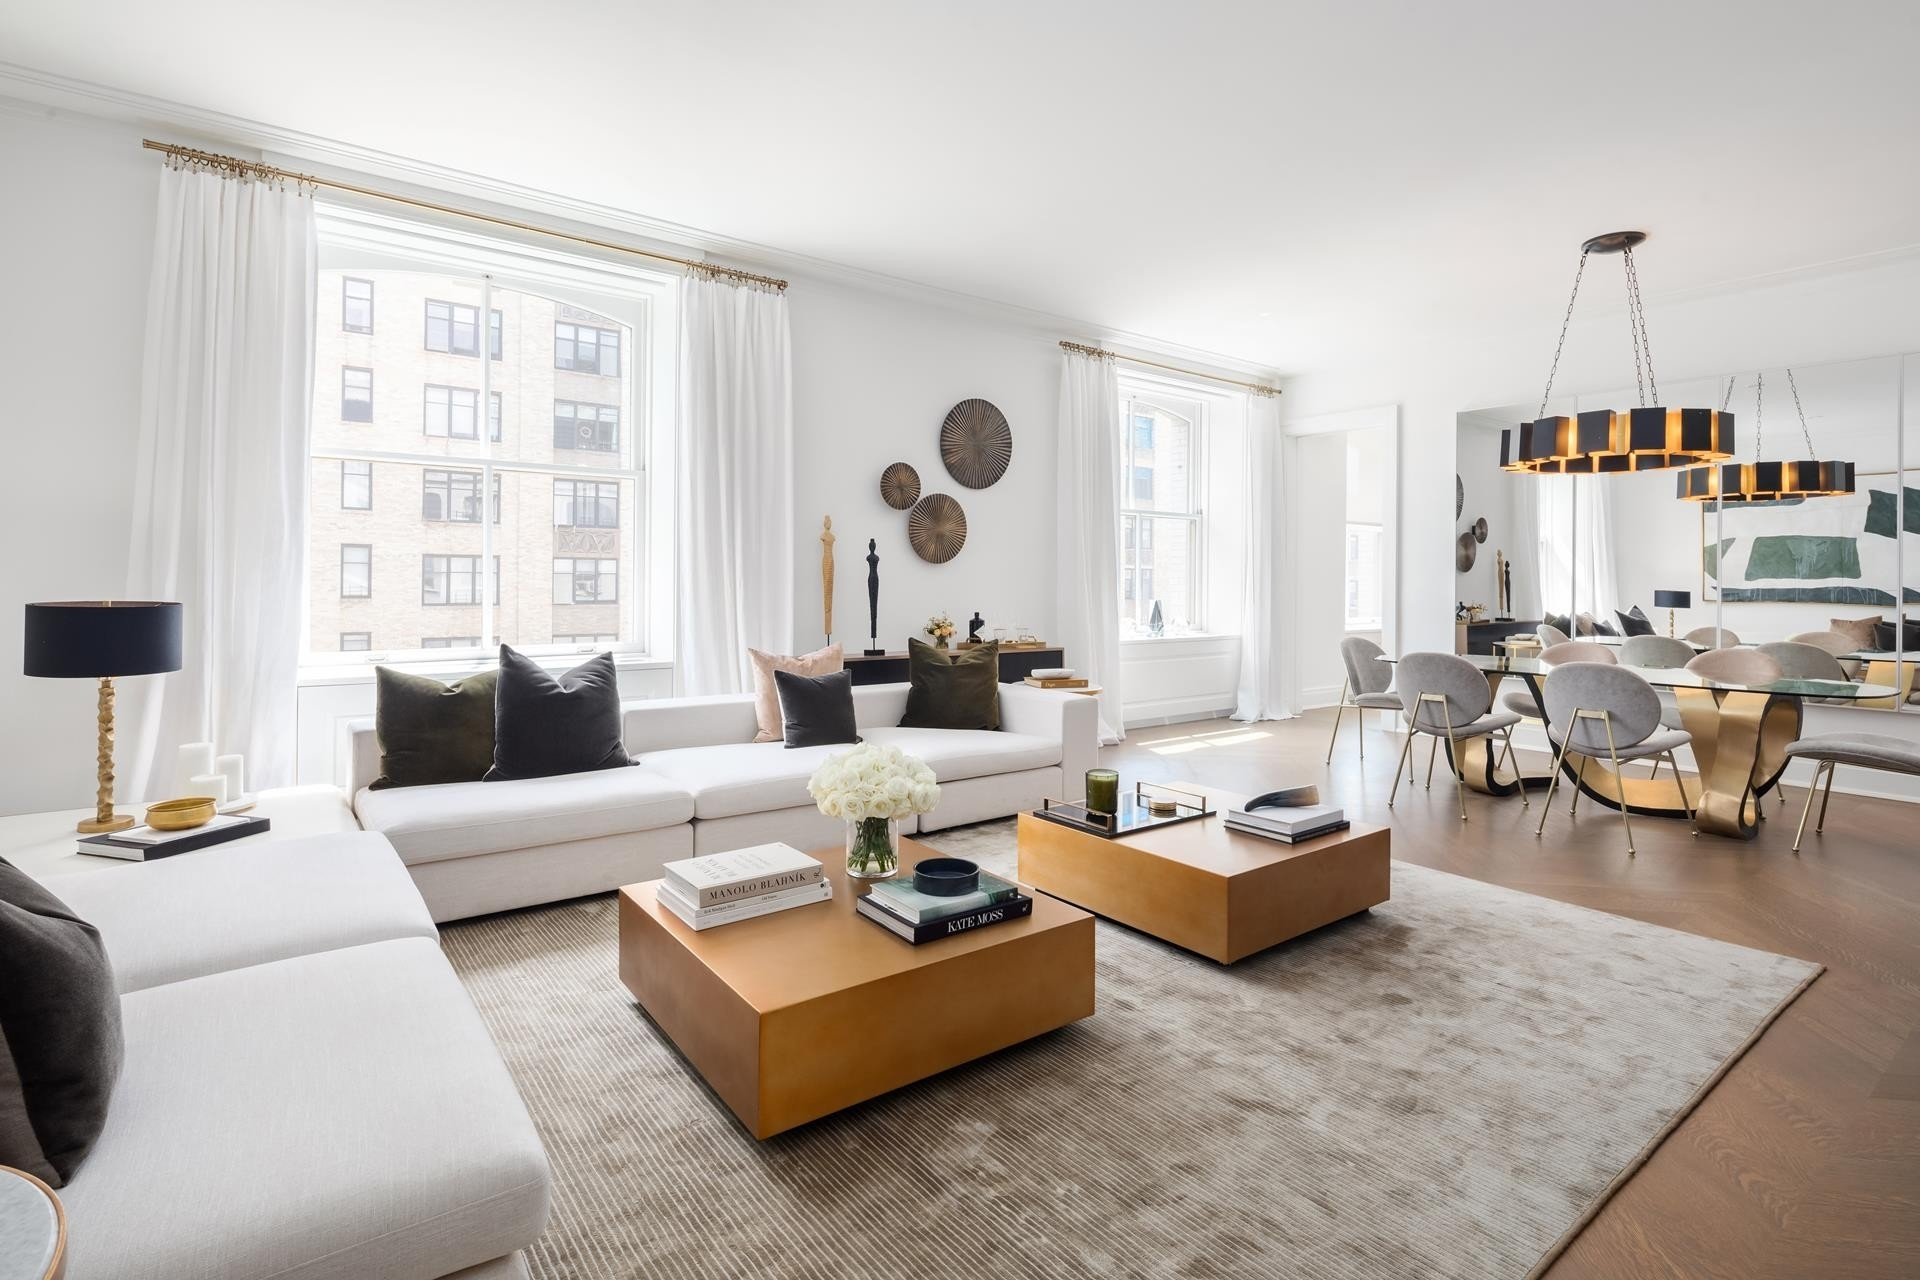 Condominium for Sale at The Belnord, 225 West 86th St, 1012 Upper West Side, New York, NY 10024